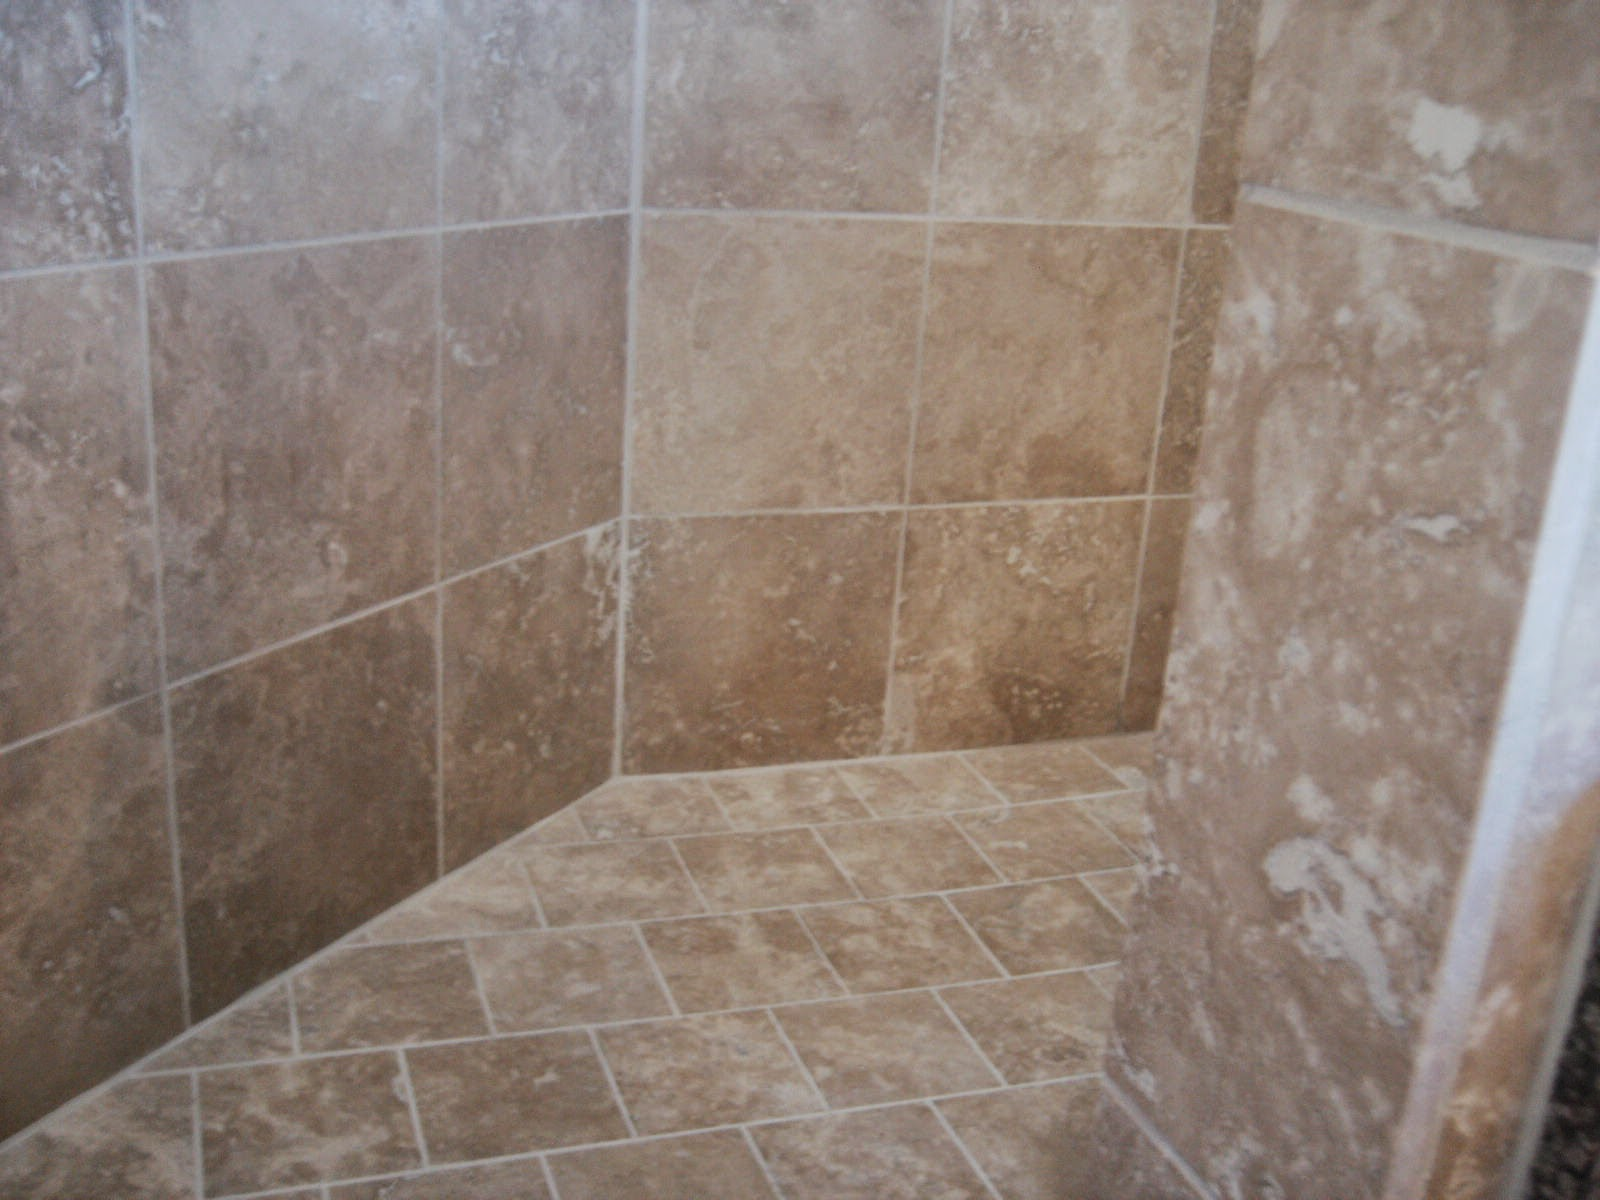 Bathroom tile ideas no grout : Black mold travertine tile revisit confessions of a